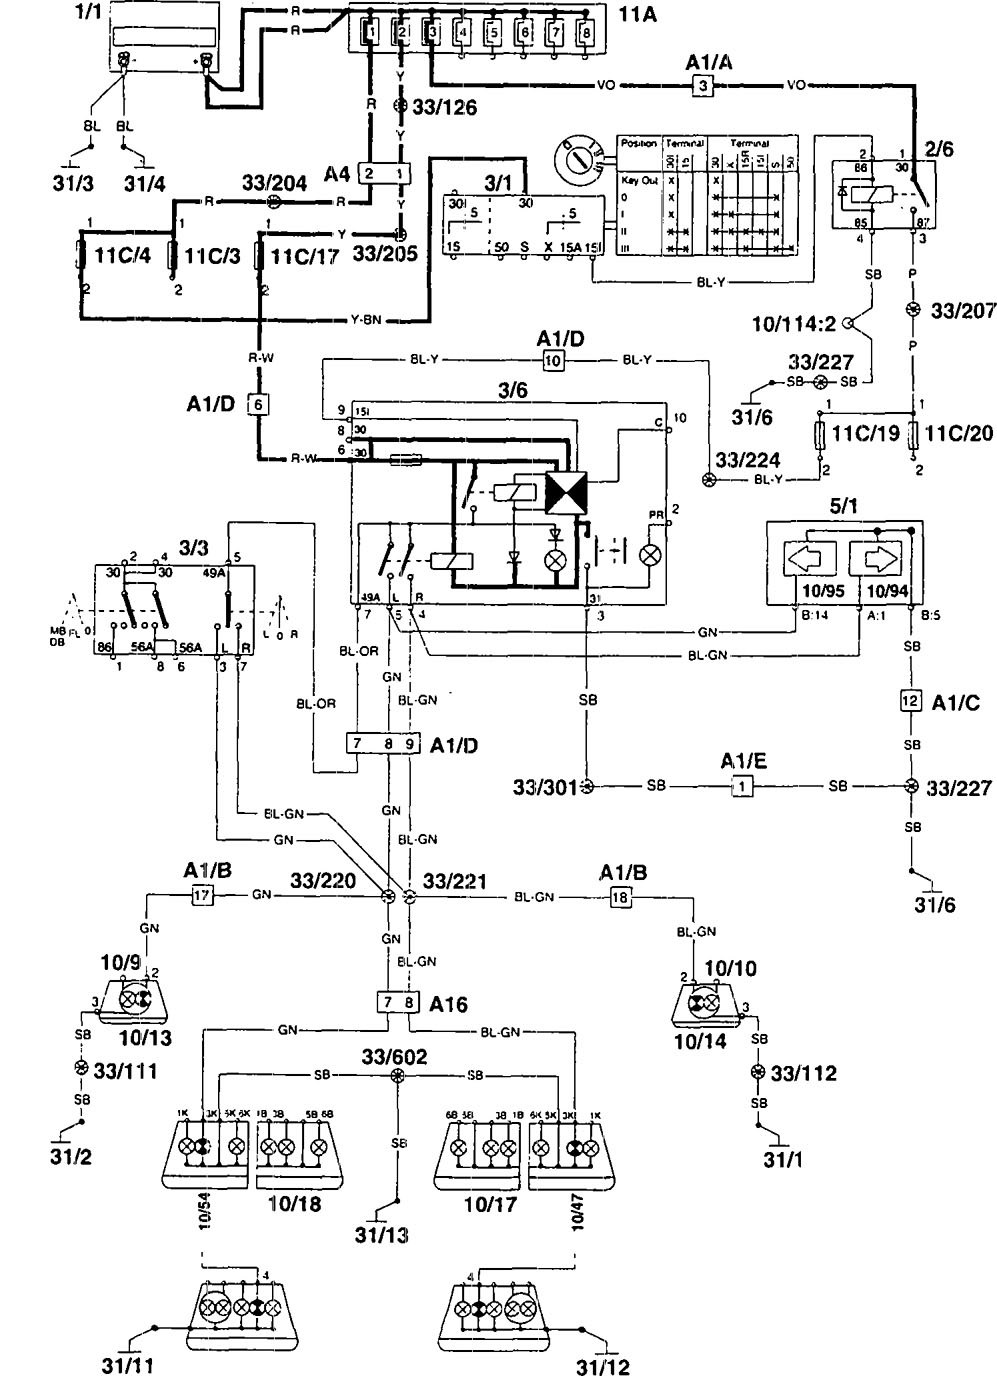 Wiring Diagram Volvo 960 : Volvo  wiring diagrams turn signal lamp